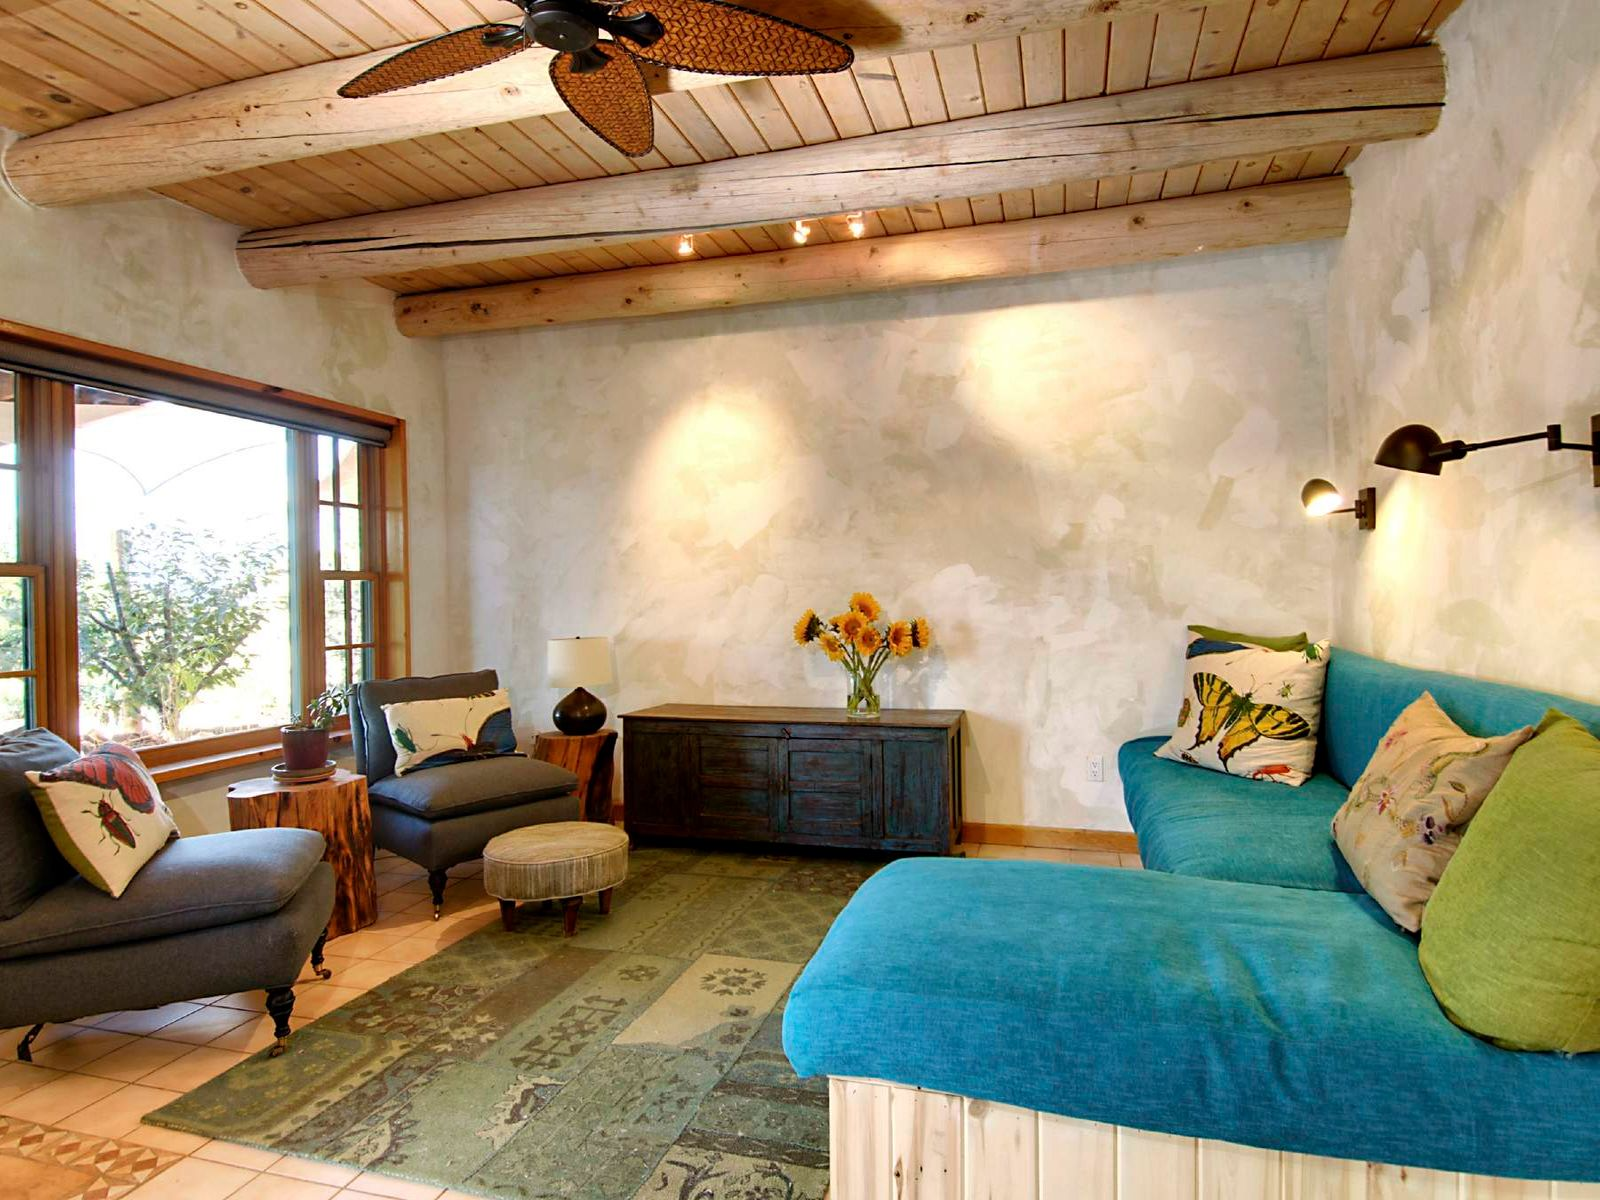 61 Herrada Road, Santa Fe NM Single Family Home - Santa Fe Real Estate